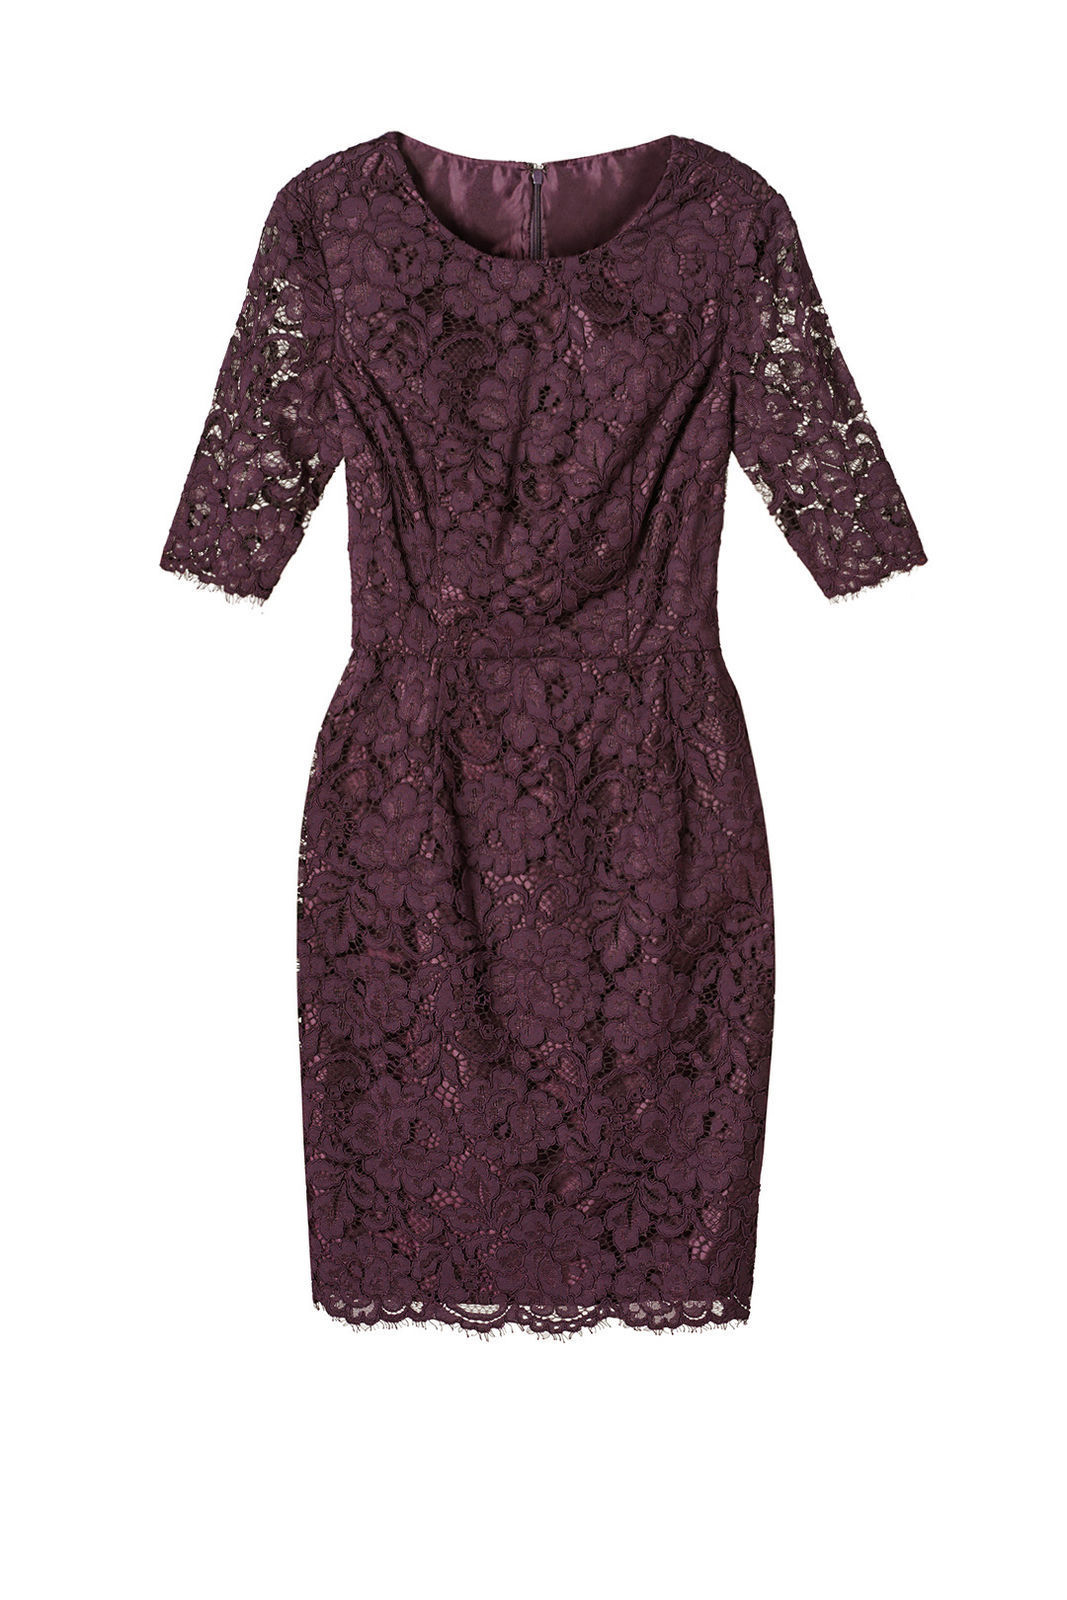 e87adb23 Details about Shoshanna Purple Floral-Lace Women's Size 8 Illusion Sheath  Dress $395- #958